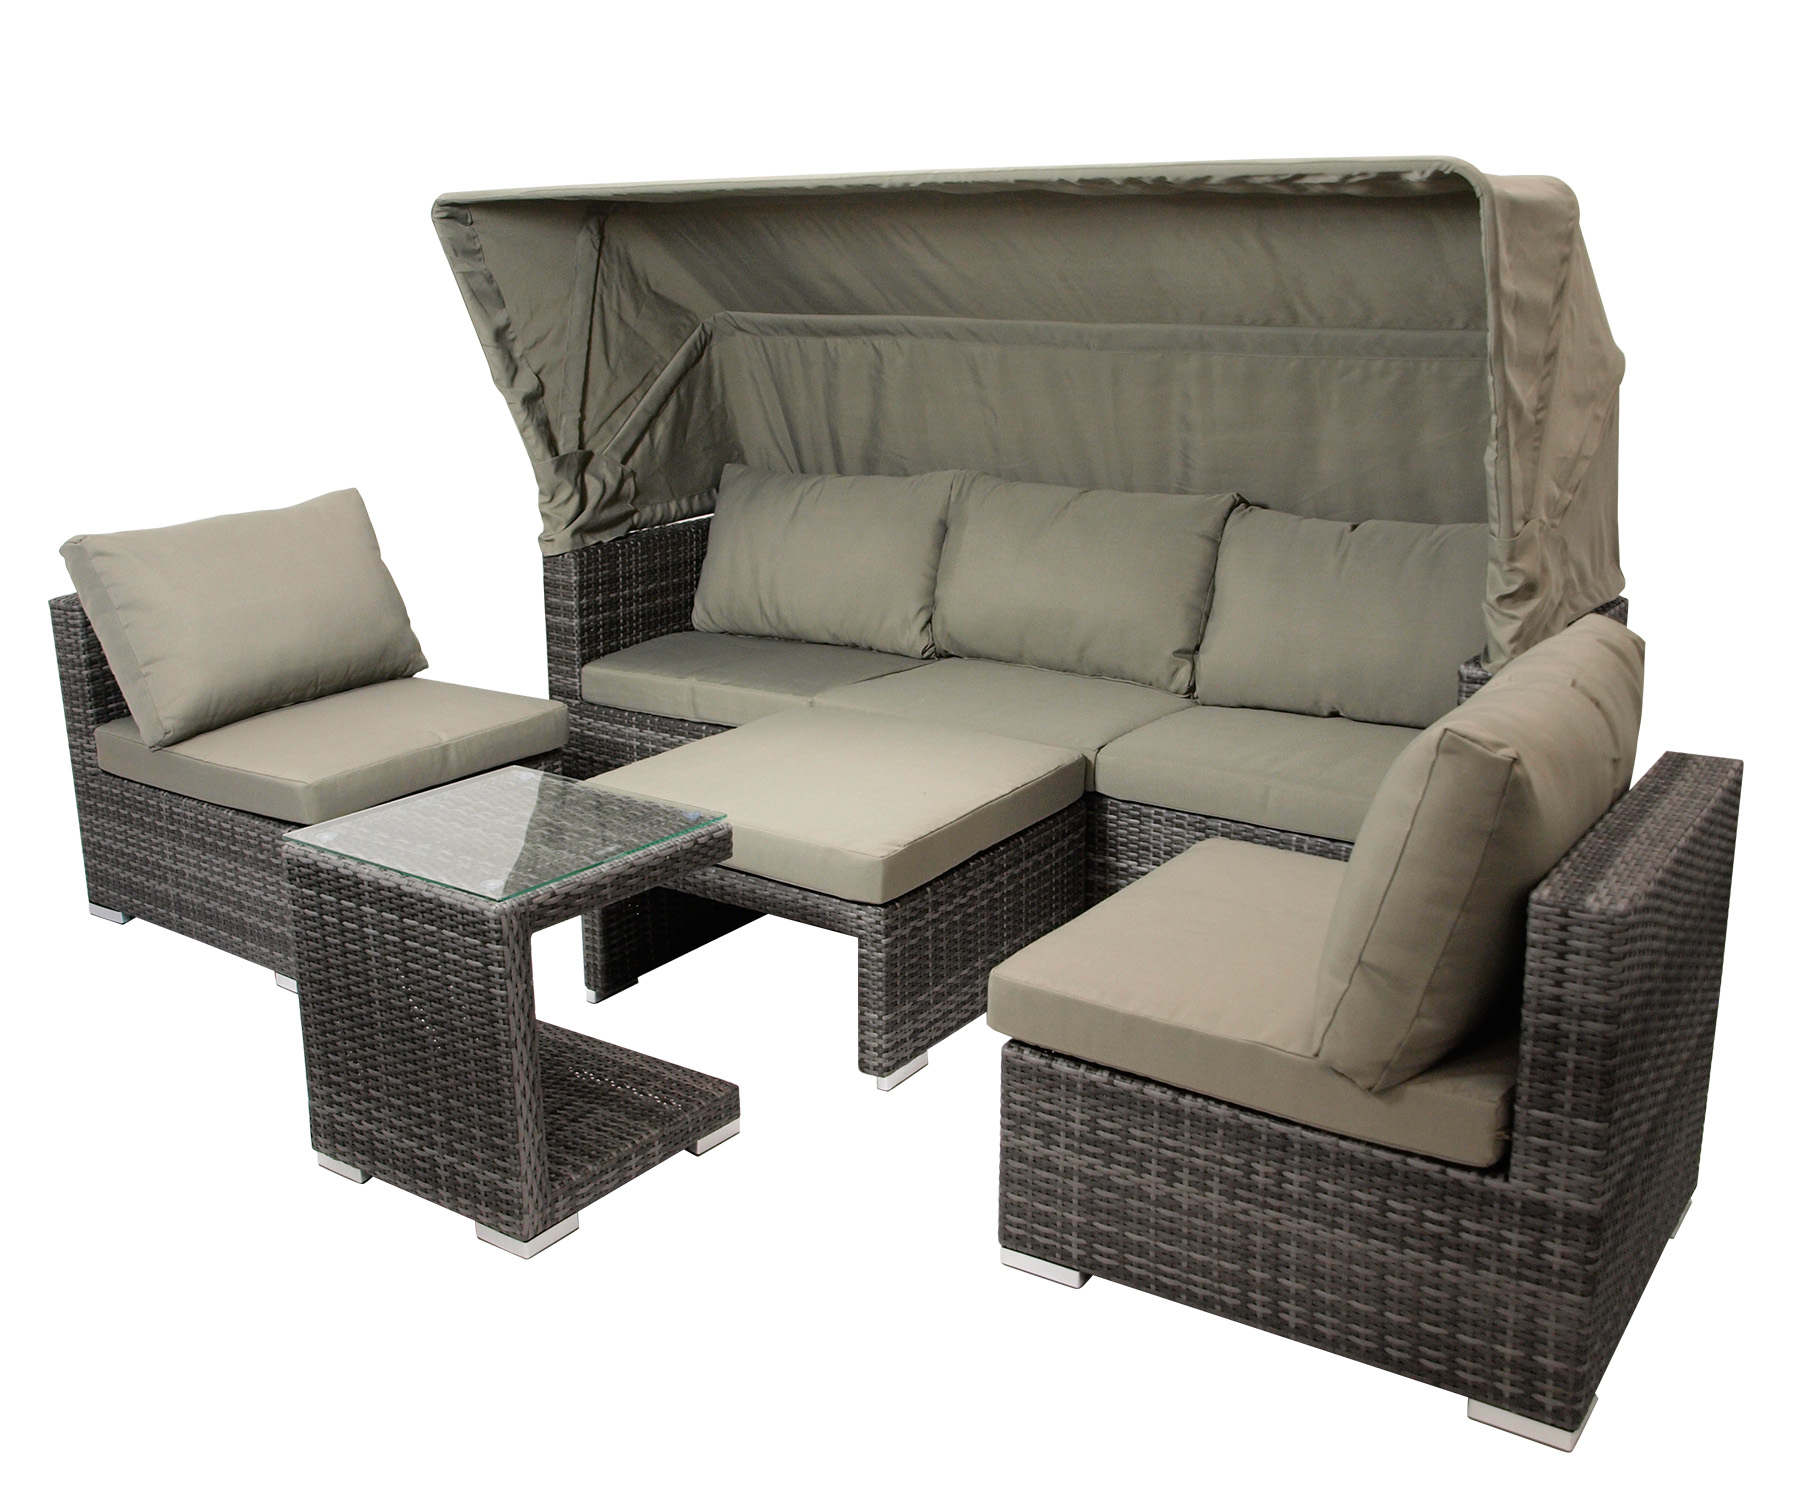 loungeset sitzgruppe liegeinsel gartenm bel liege lounge manacor alu rattan grau ebay. Black Bedroom Furniture Sets. Home Design Ideas